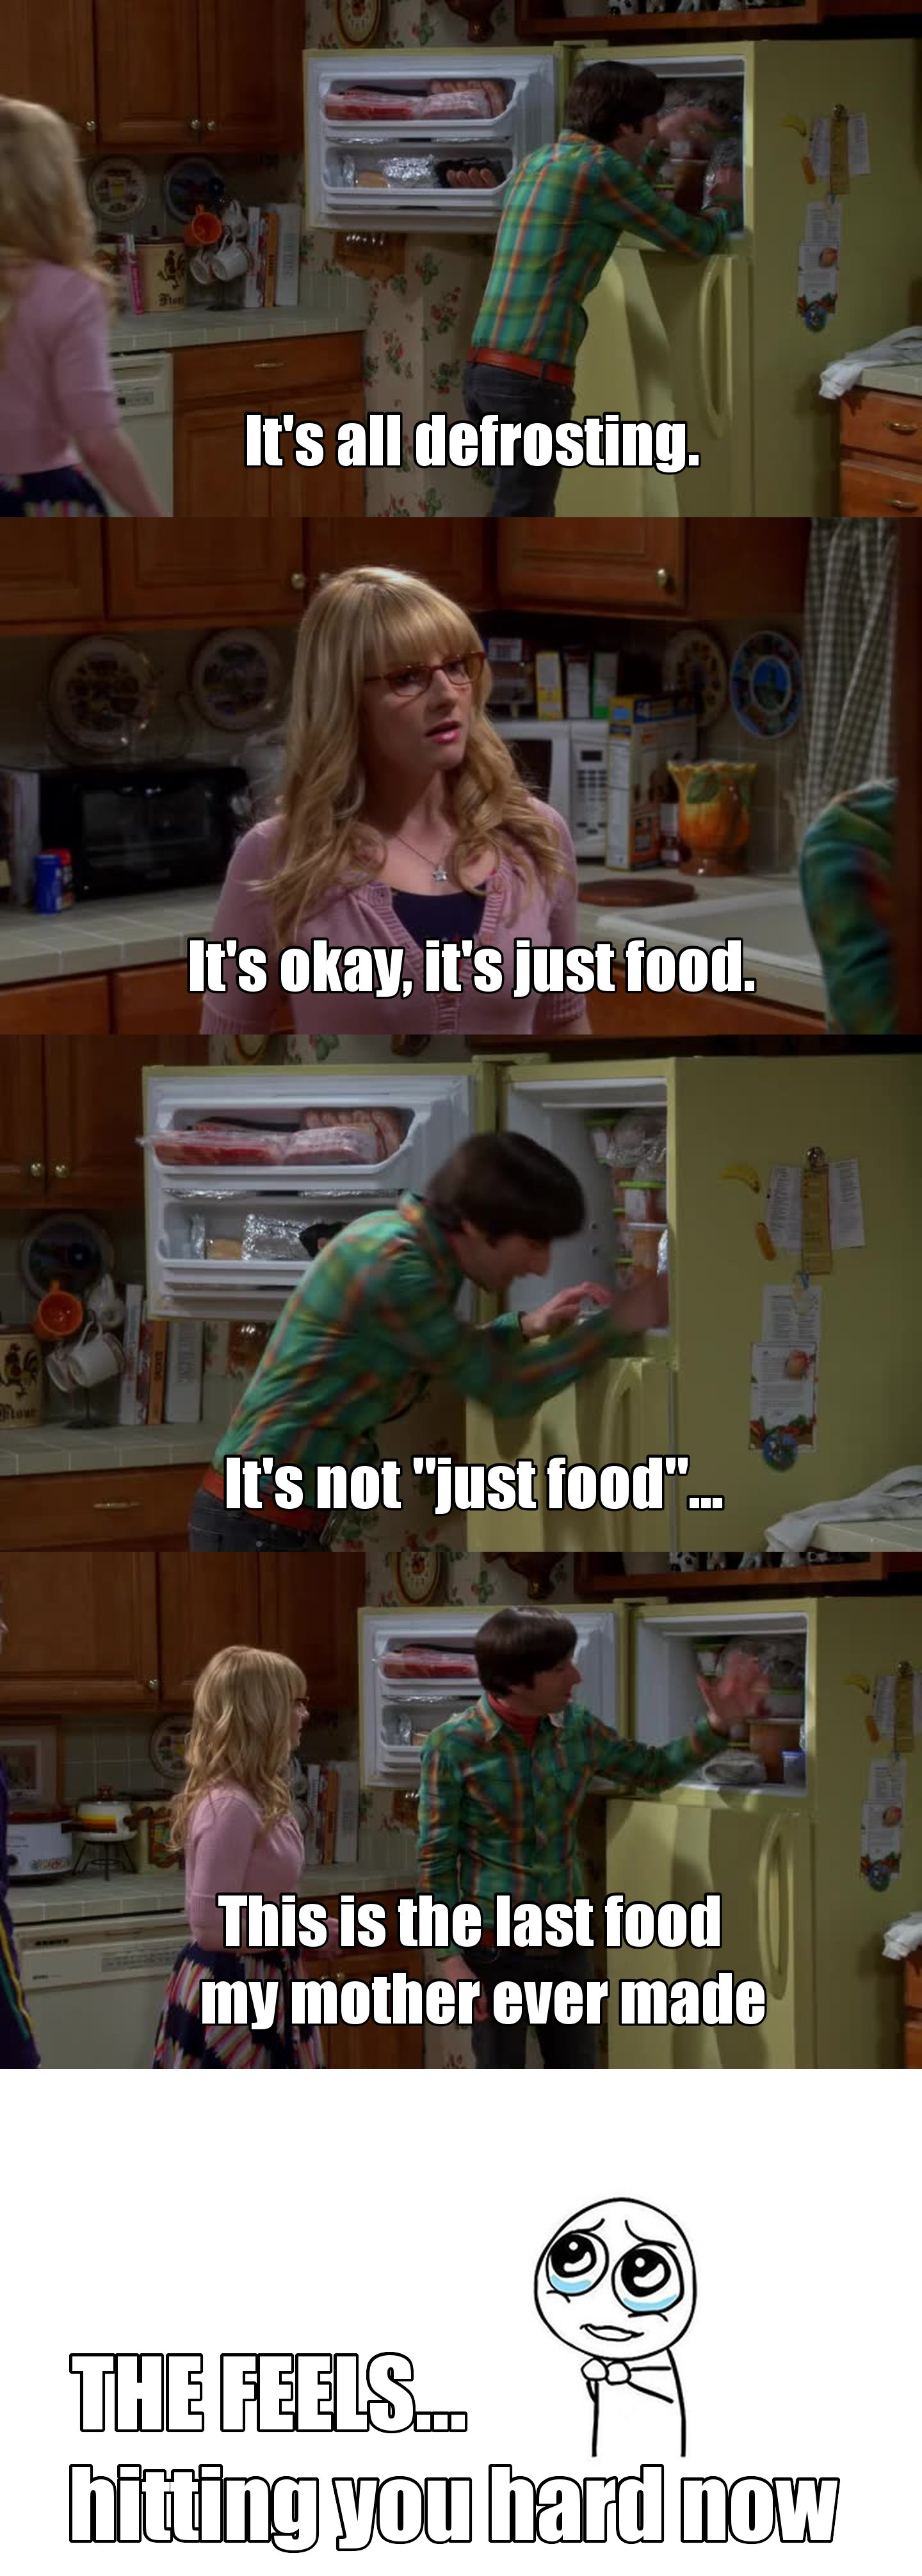 Your mom last food... damn, this is a nightmare. I would miss my mom food so much!